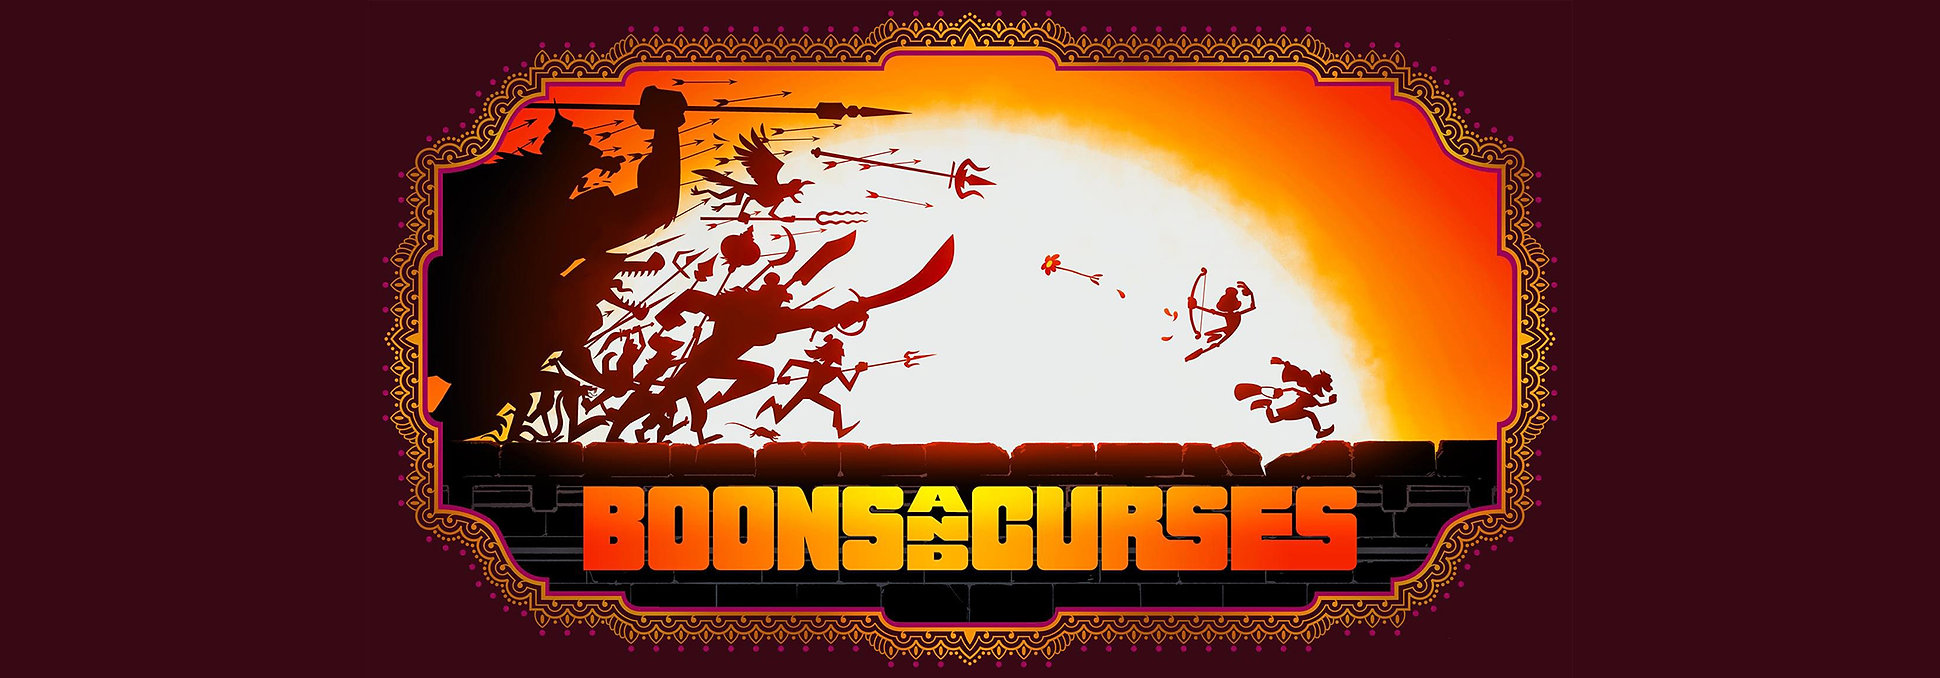 Boons and Curses Launch Poster MR.jpg